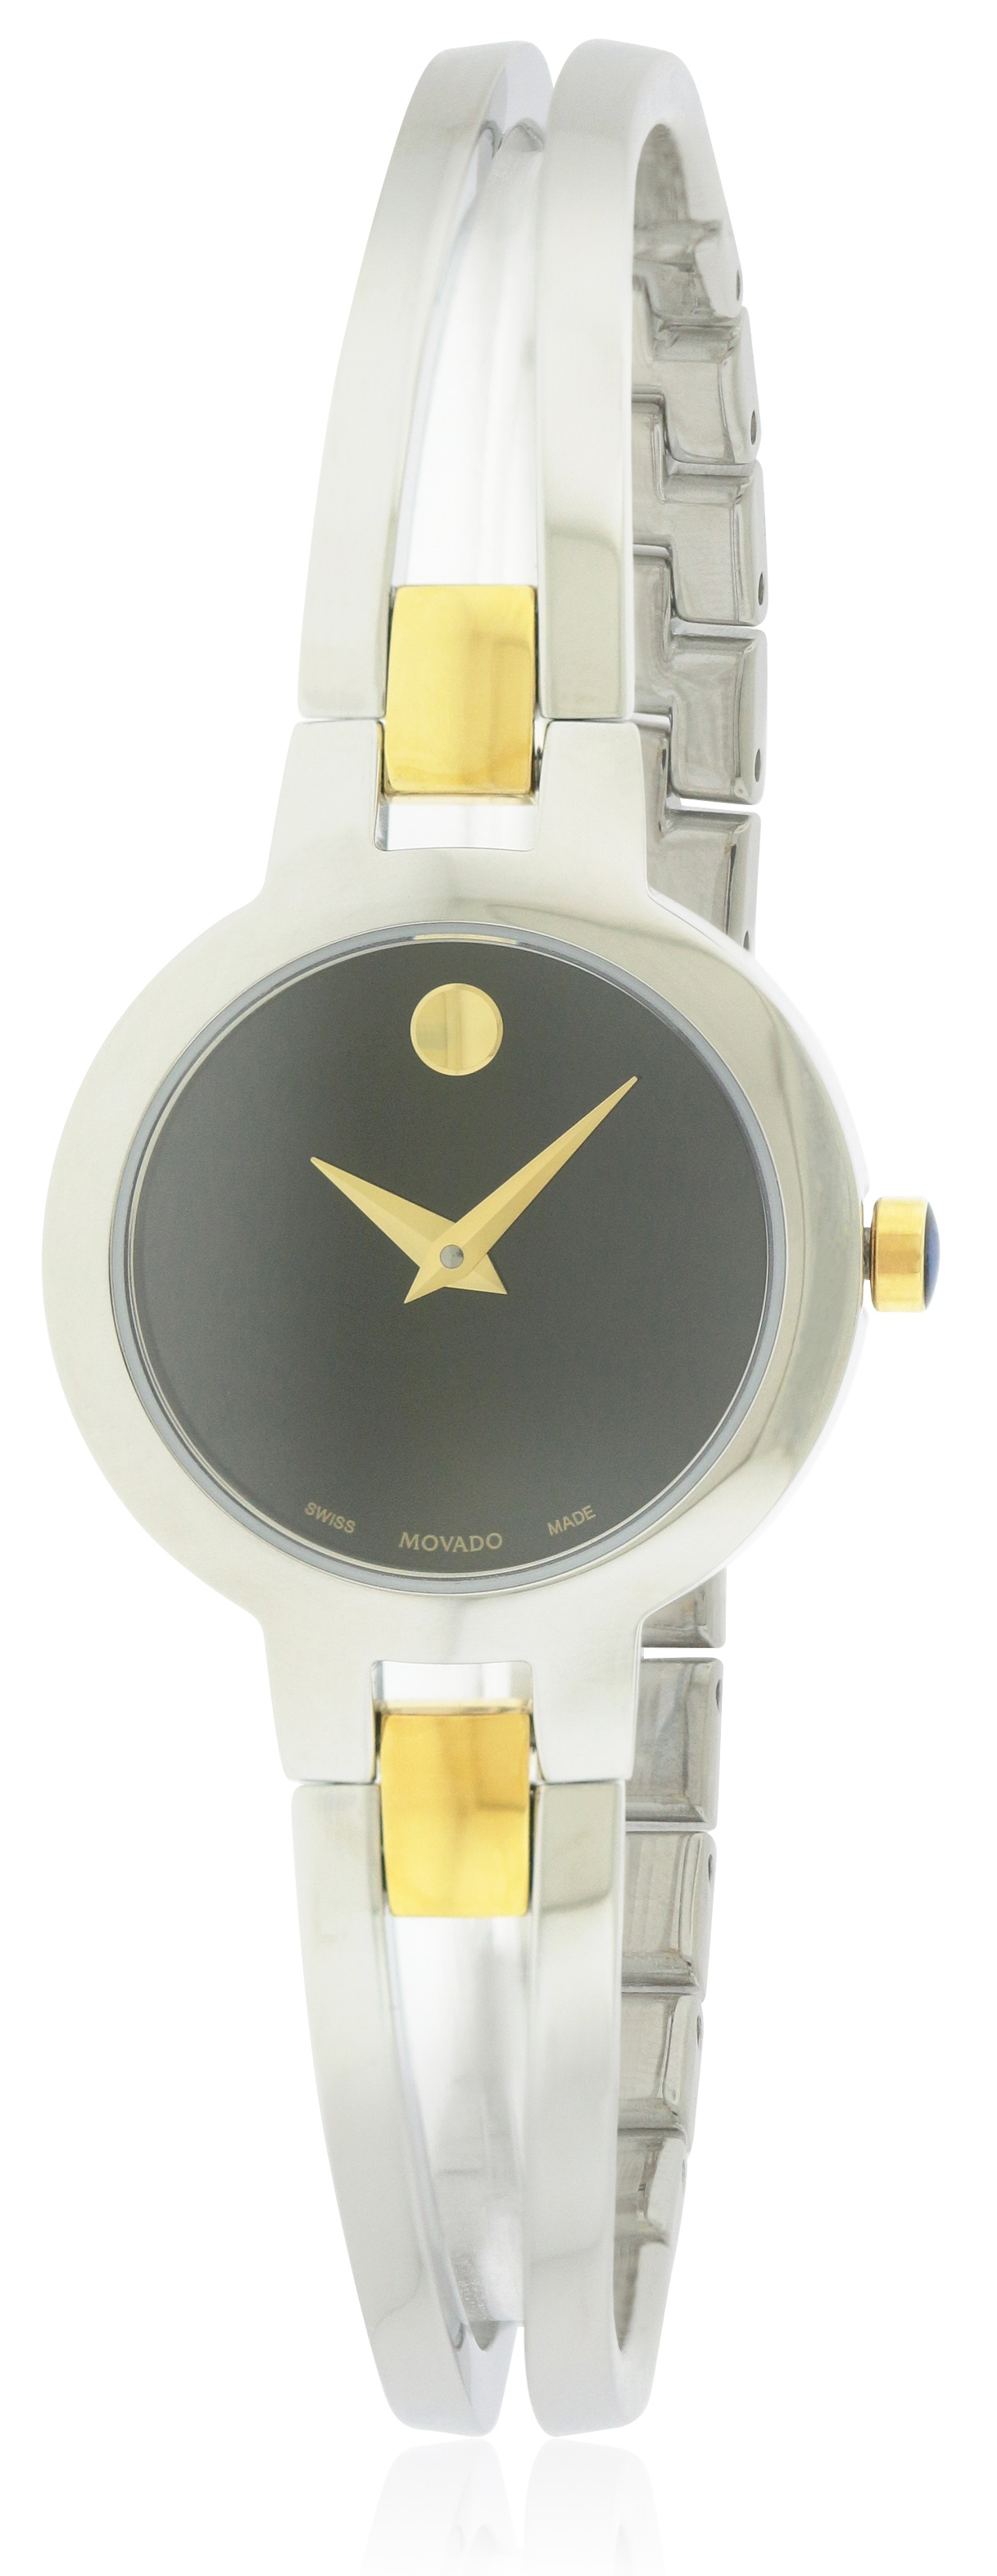 commercial esq watches watch movado youtube